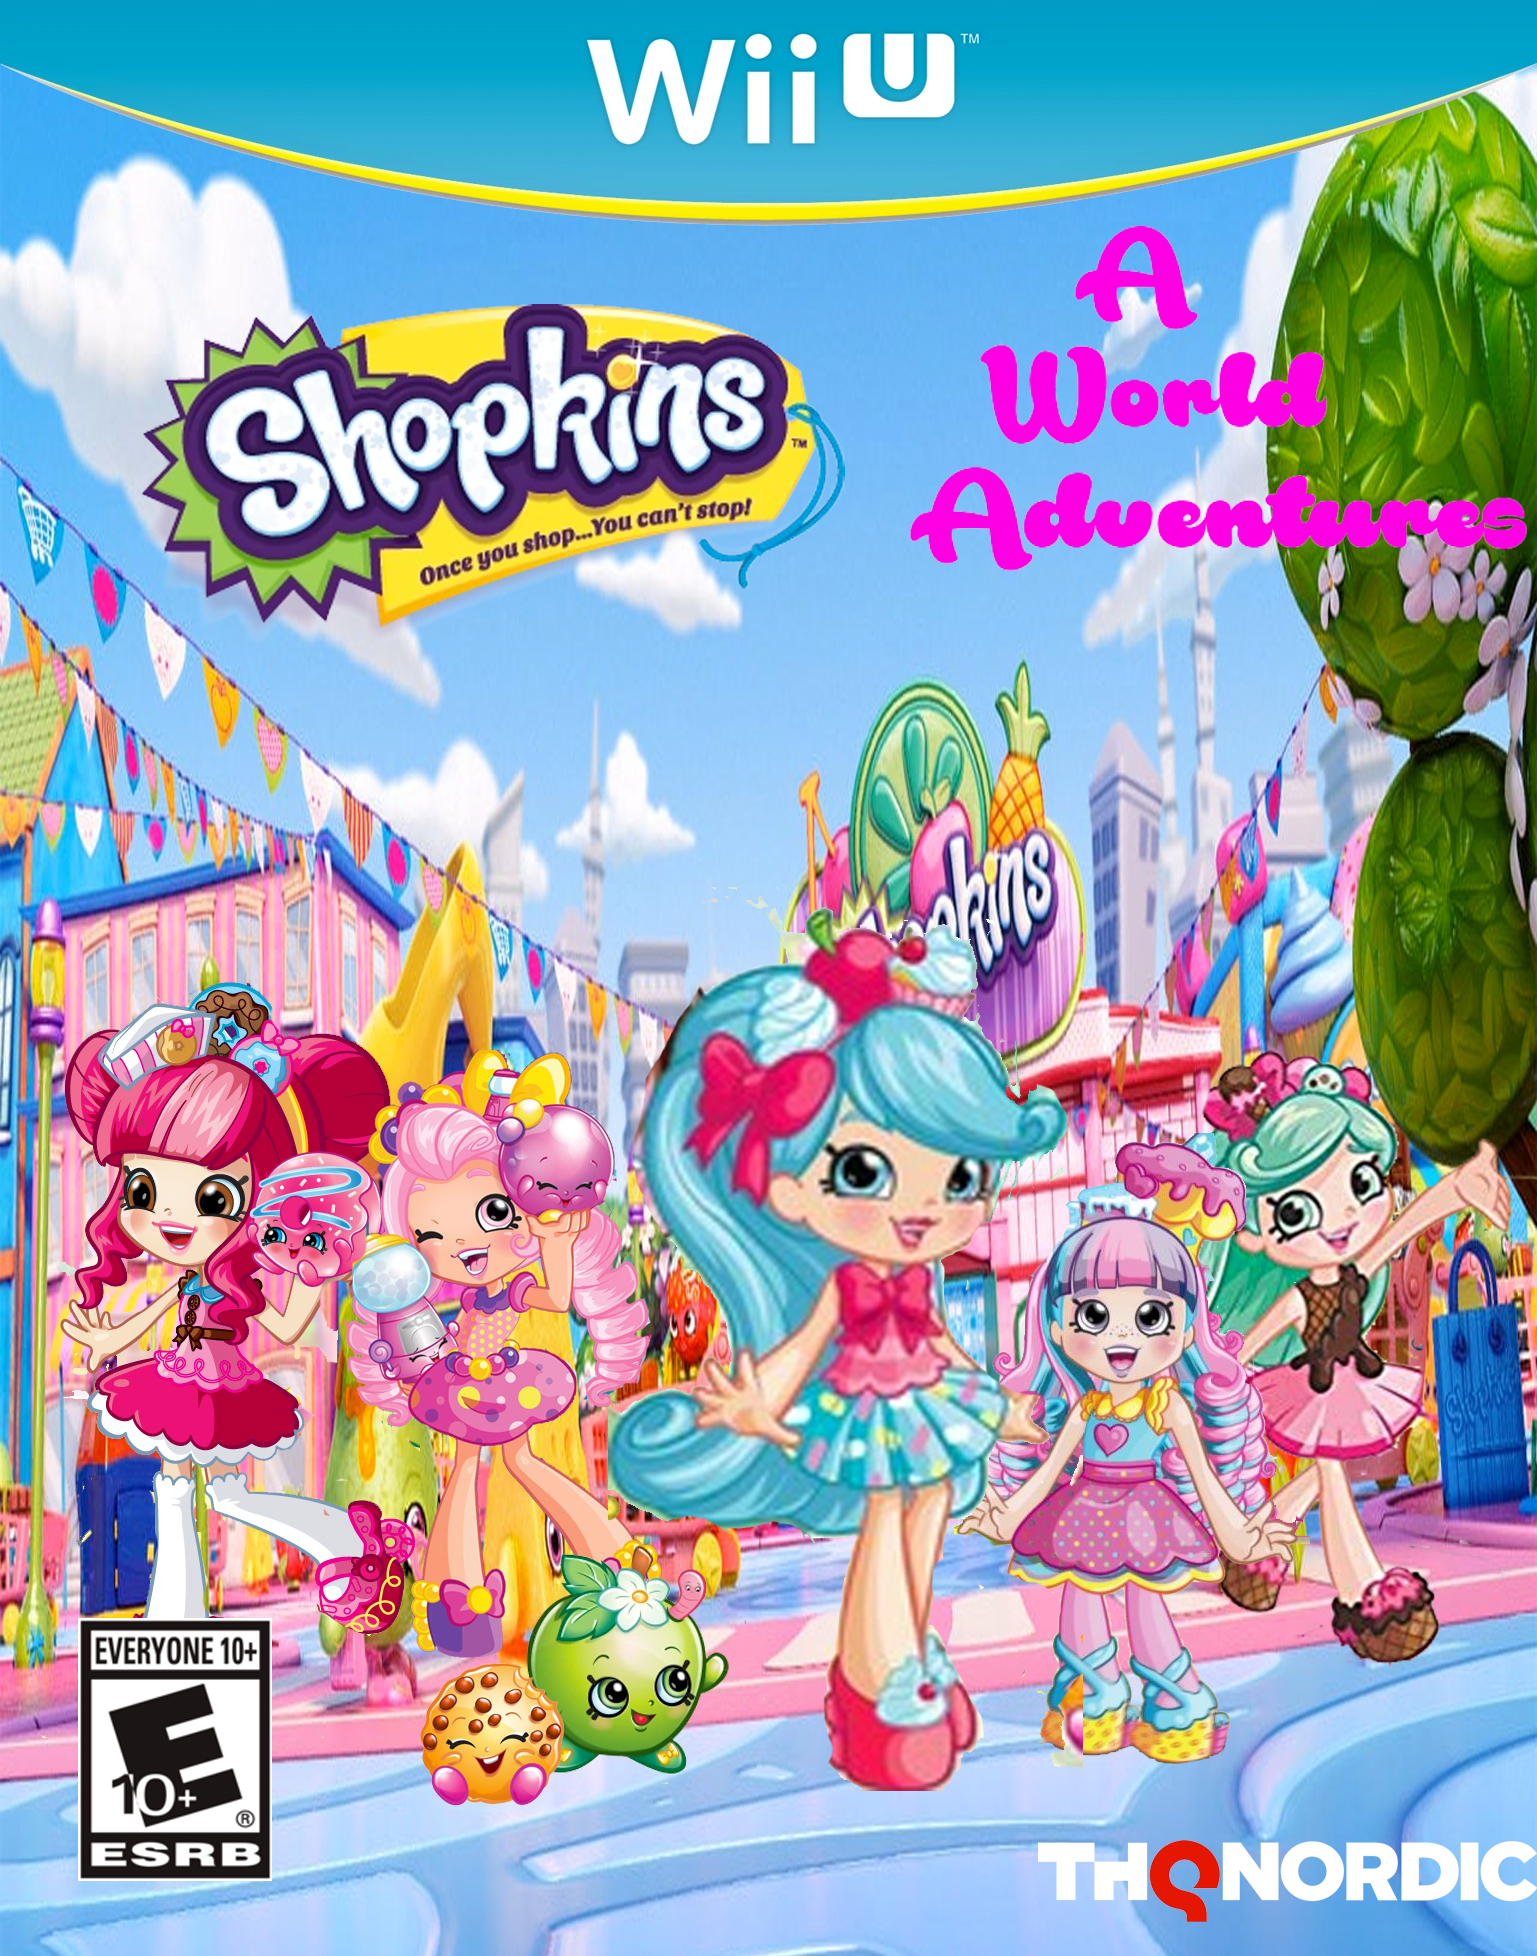 Shopkins: A World Adventures